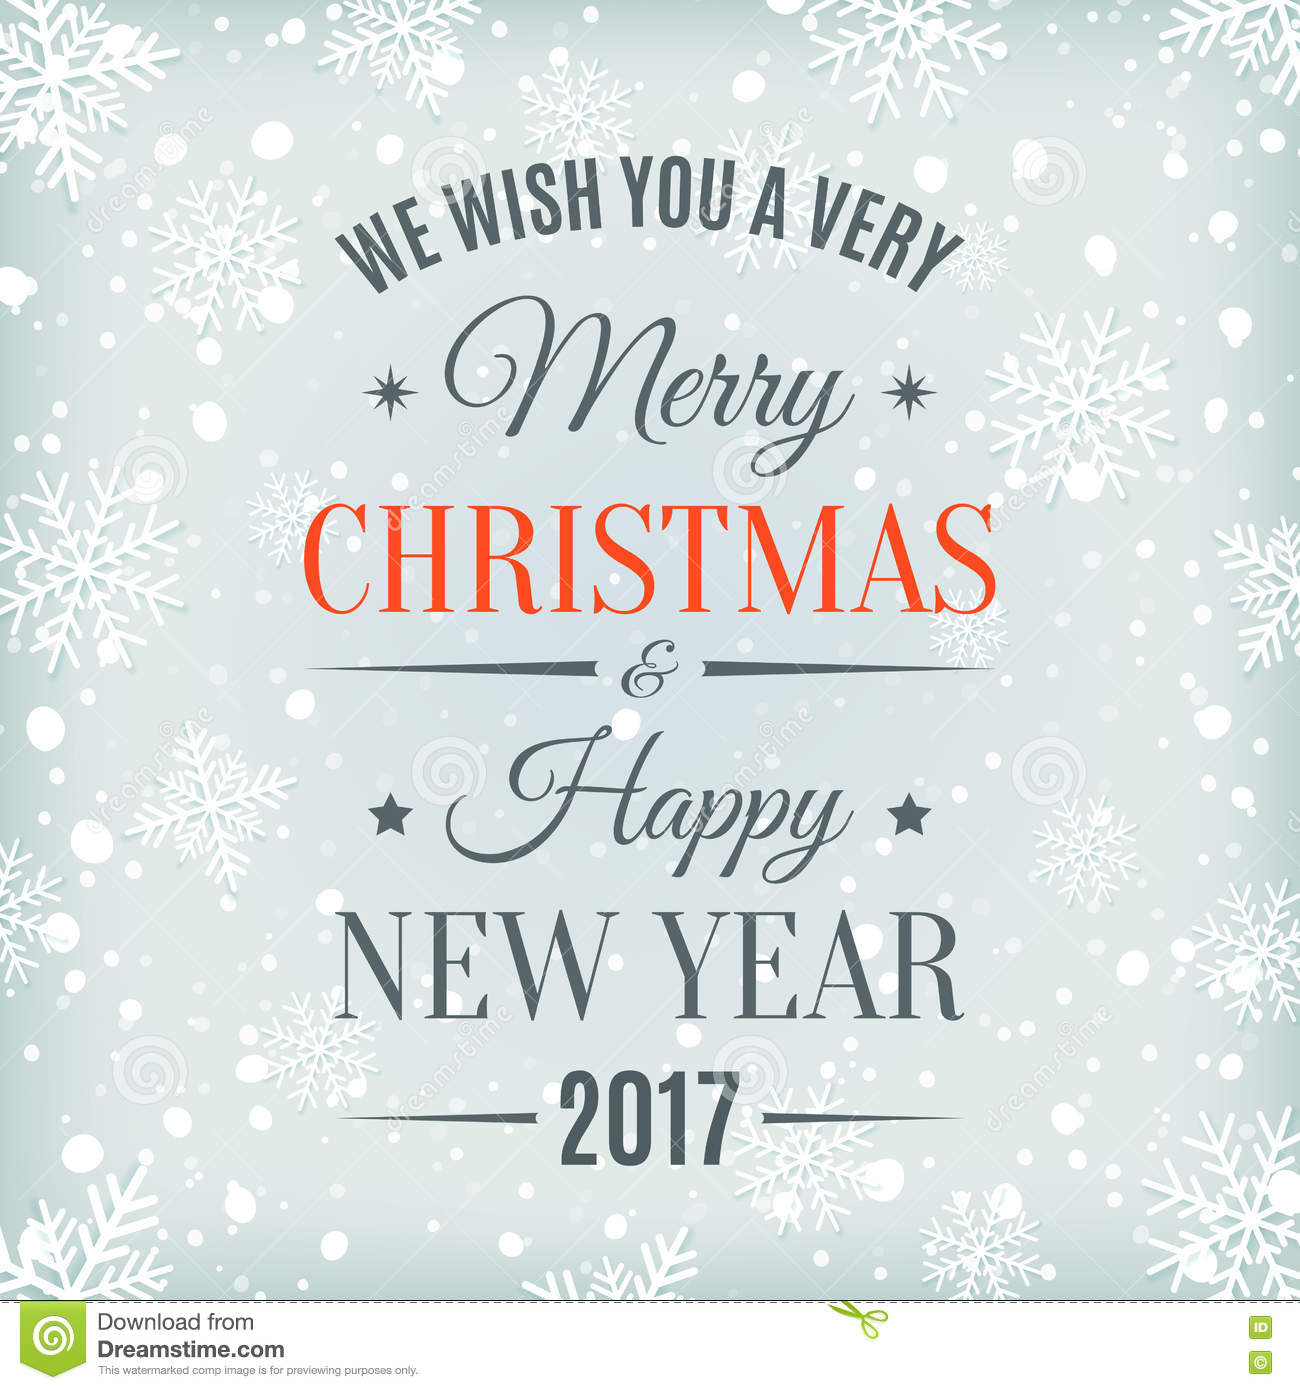 Greetings Happy 2017 And Merry Year Christmas New